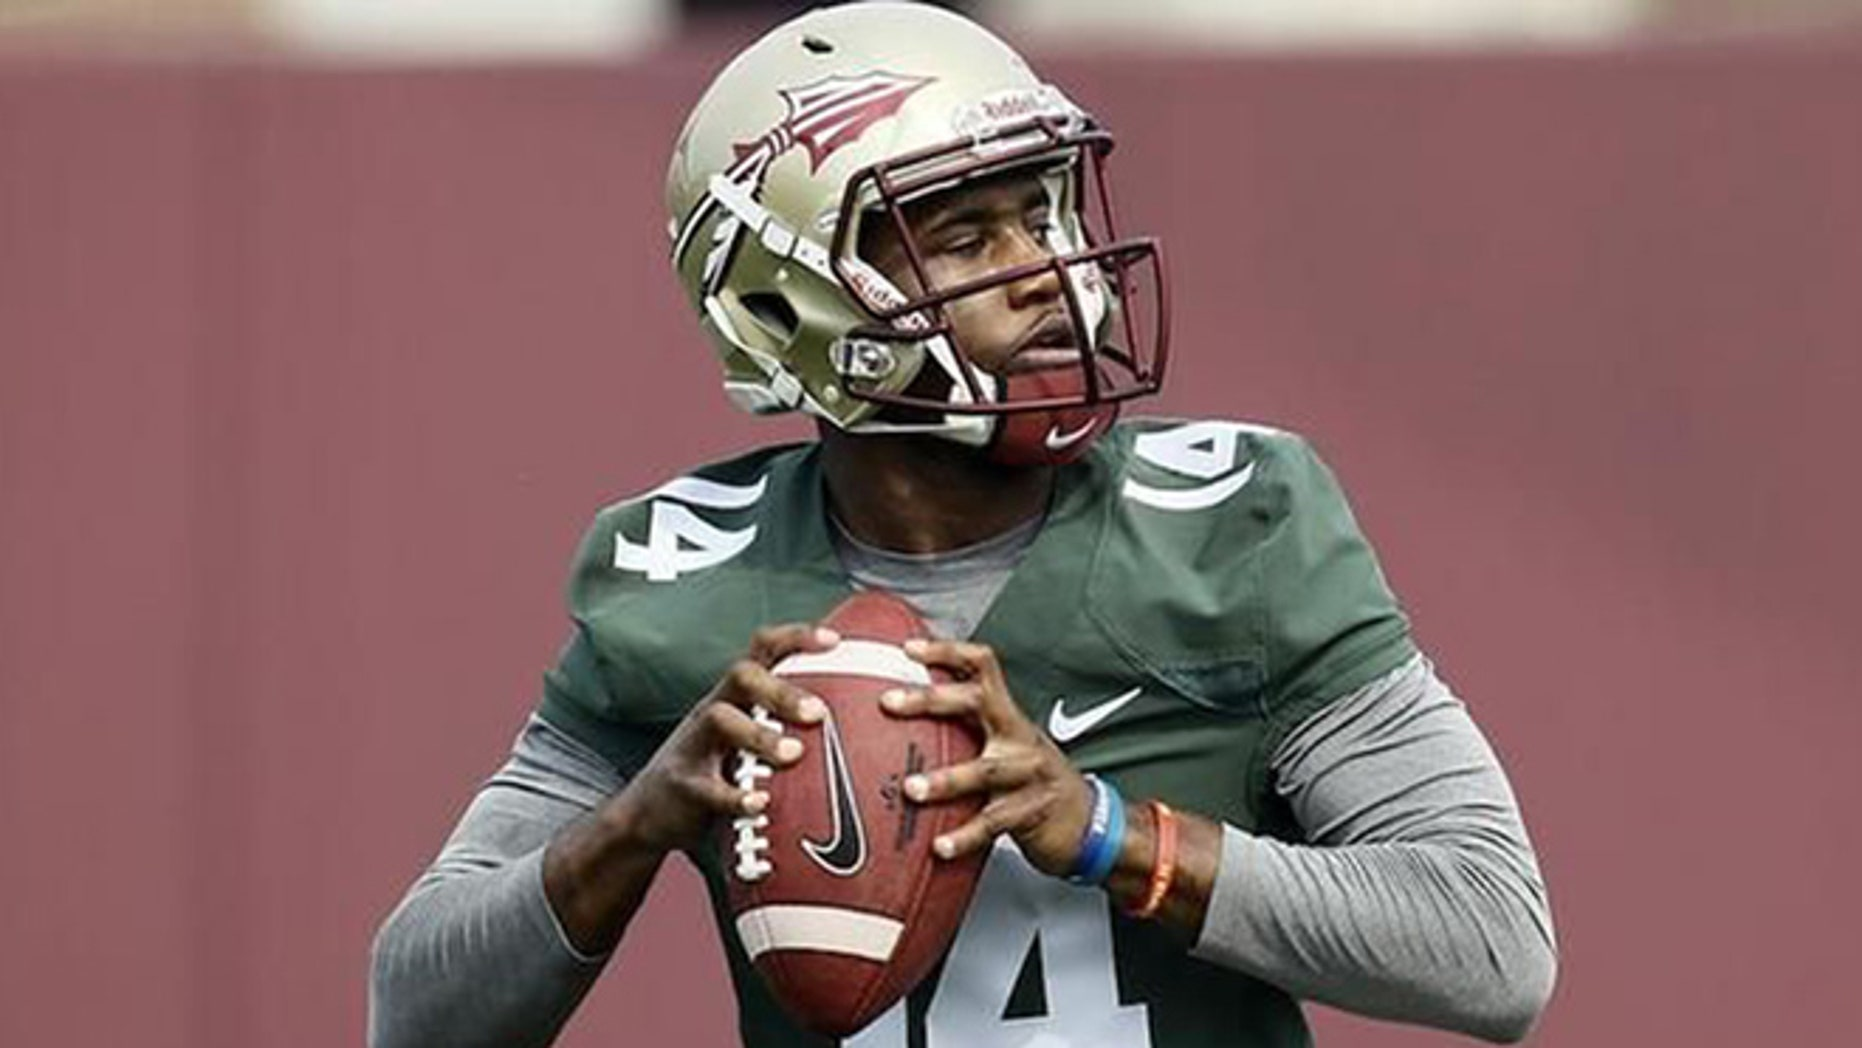 FSU freshman QB De'Andre Johnson is shown.